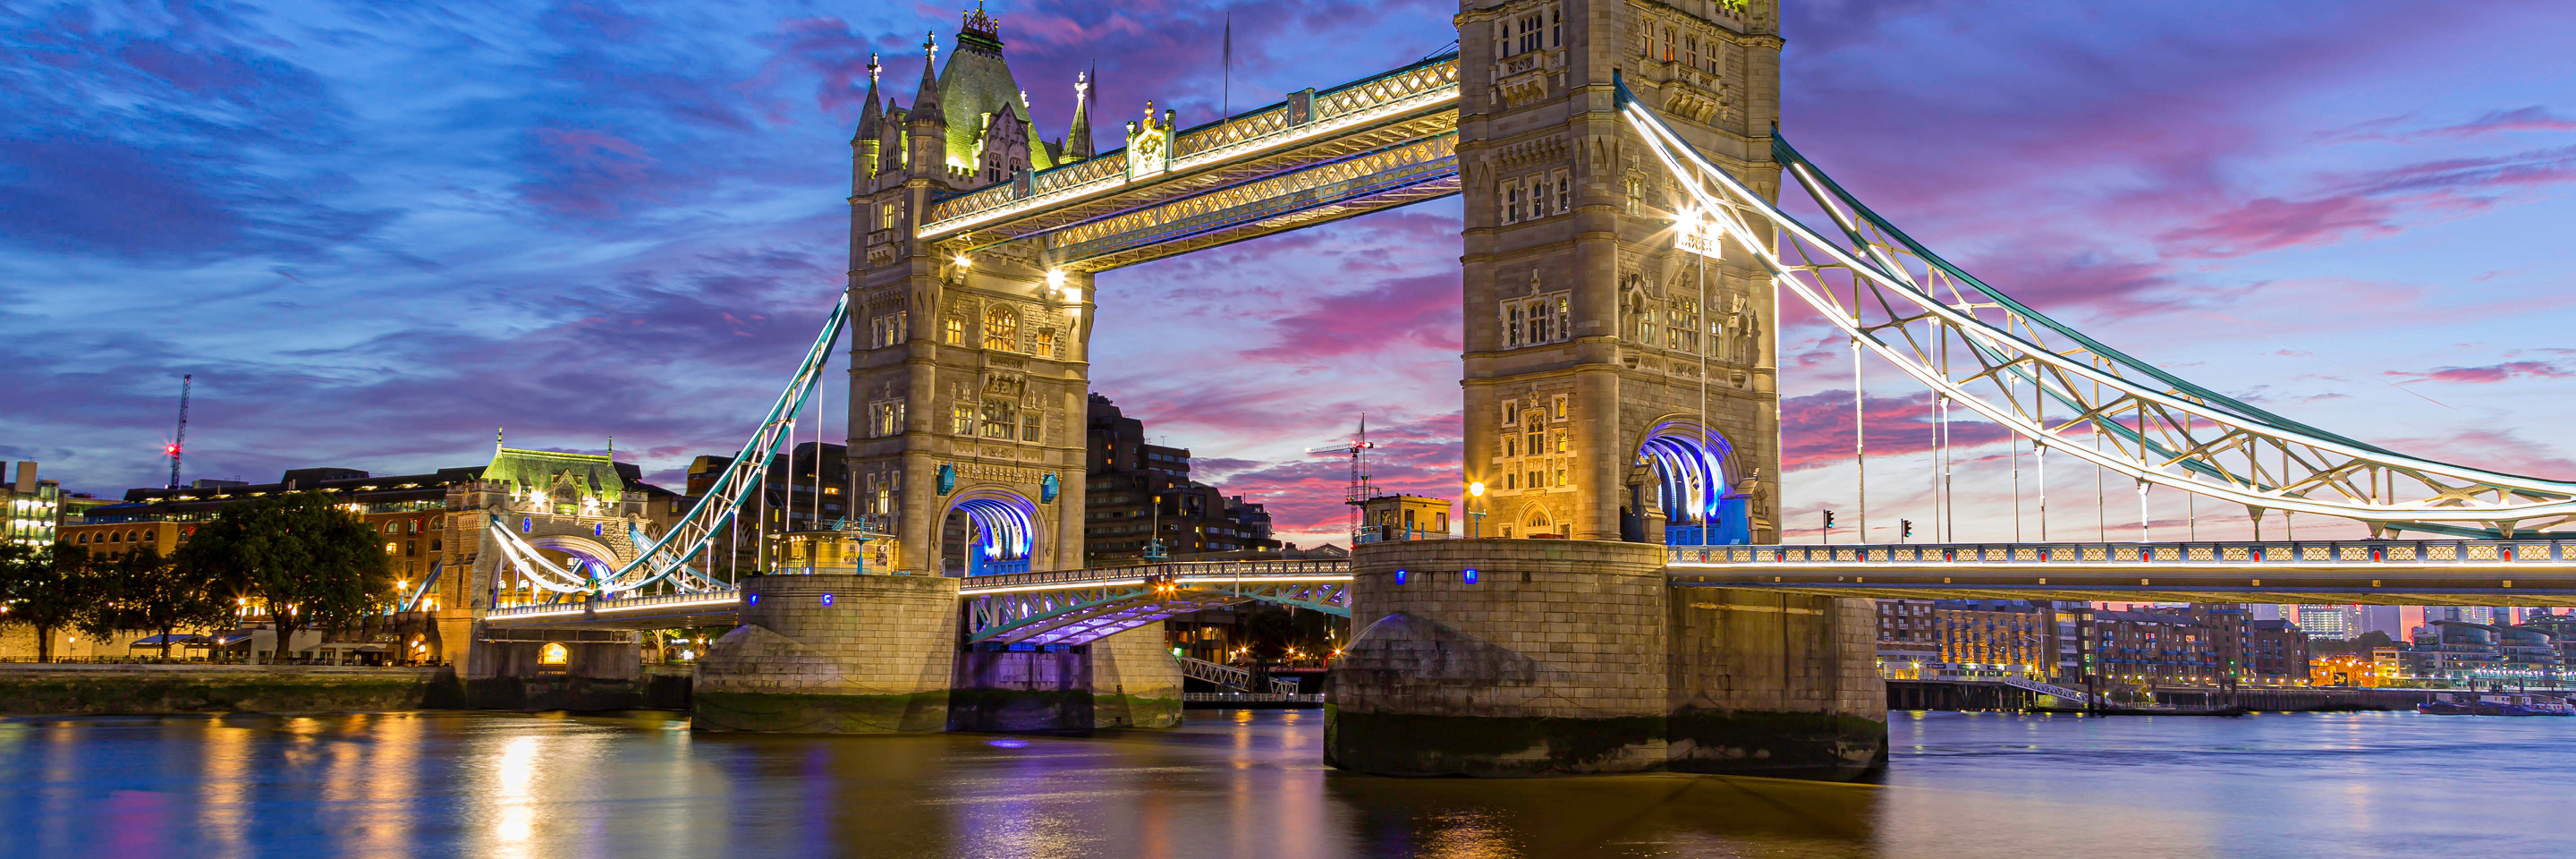 Burgundy & Provence with 2 Nights in Nice, 2 Nights in Paris & 3 Nights in London (Northbound)